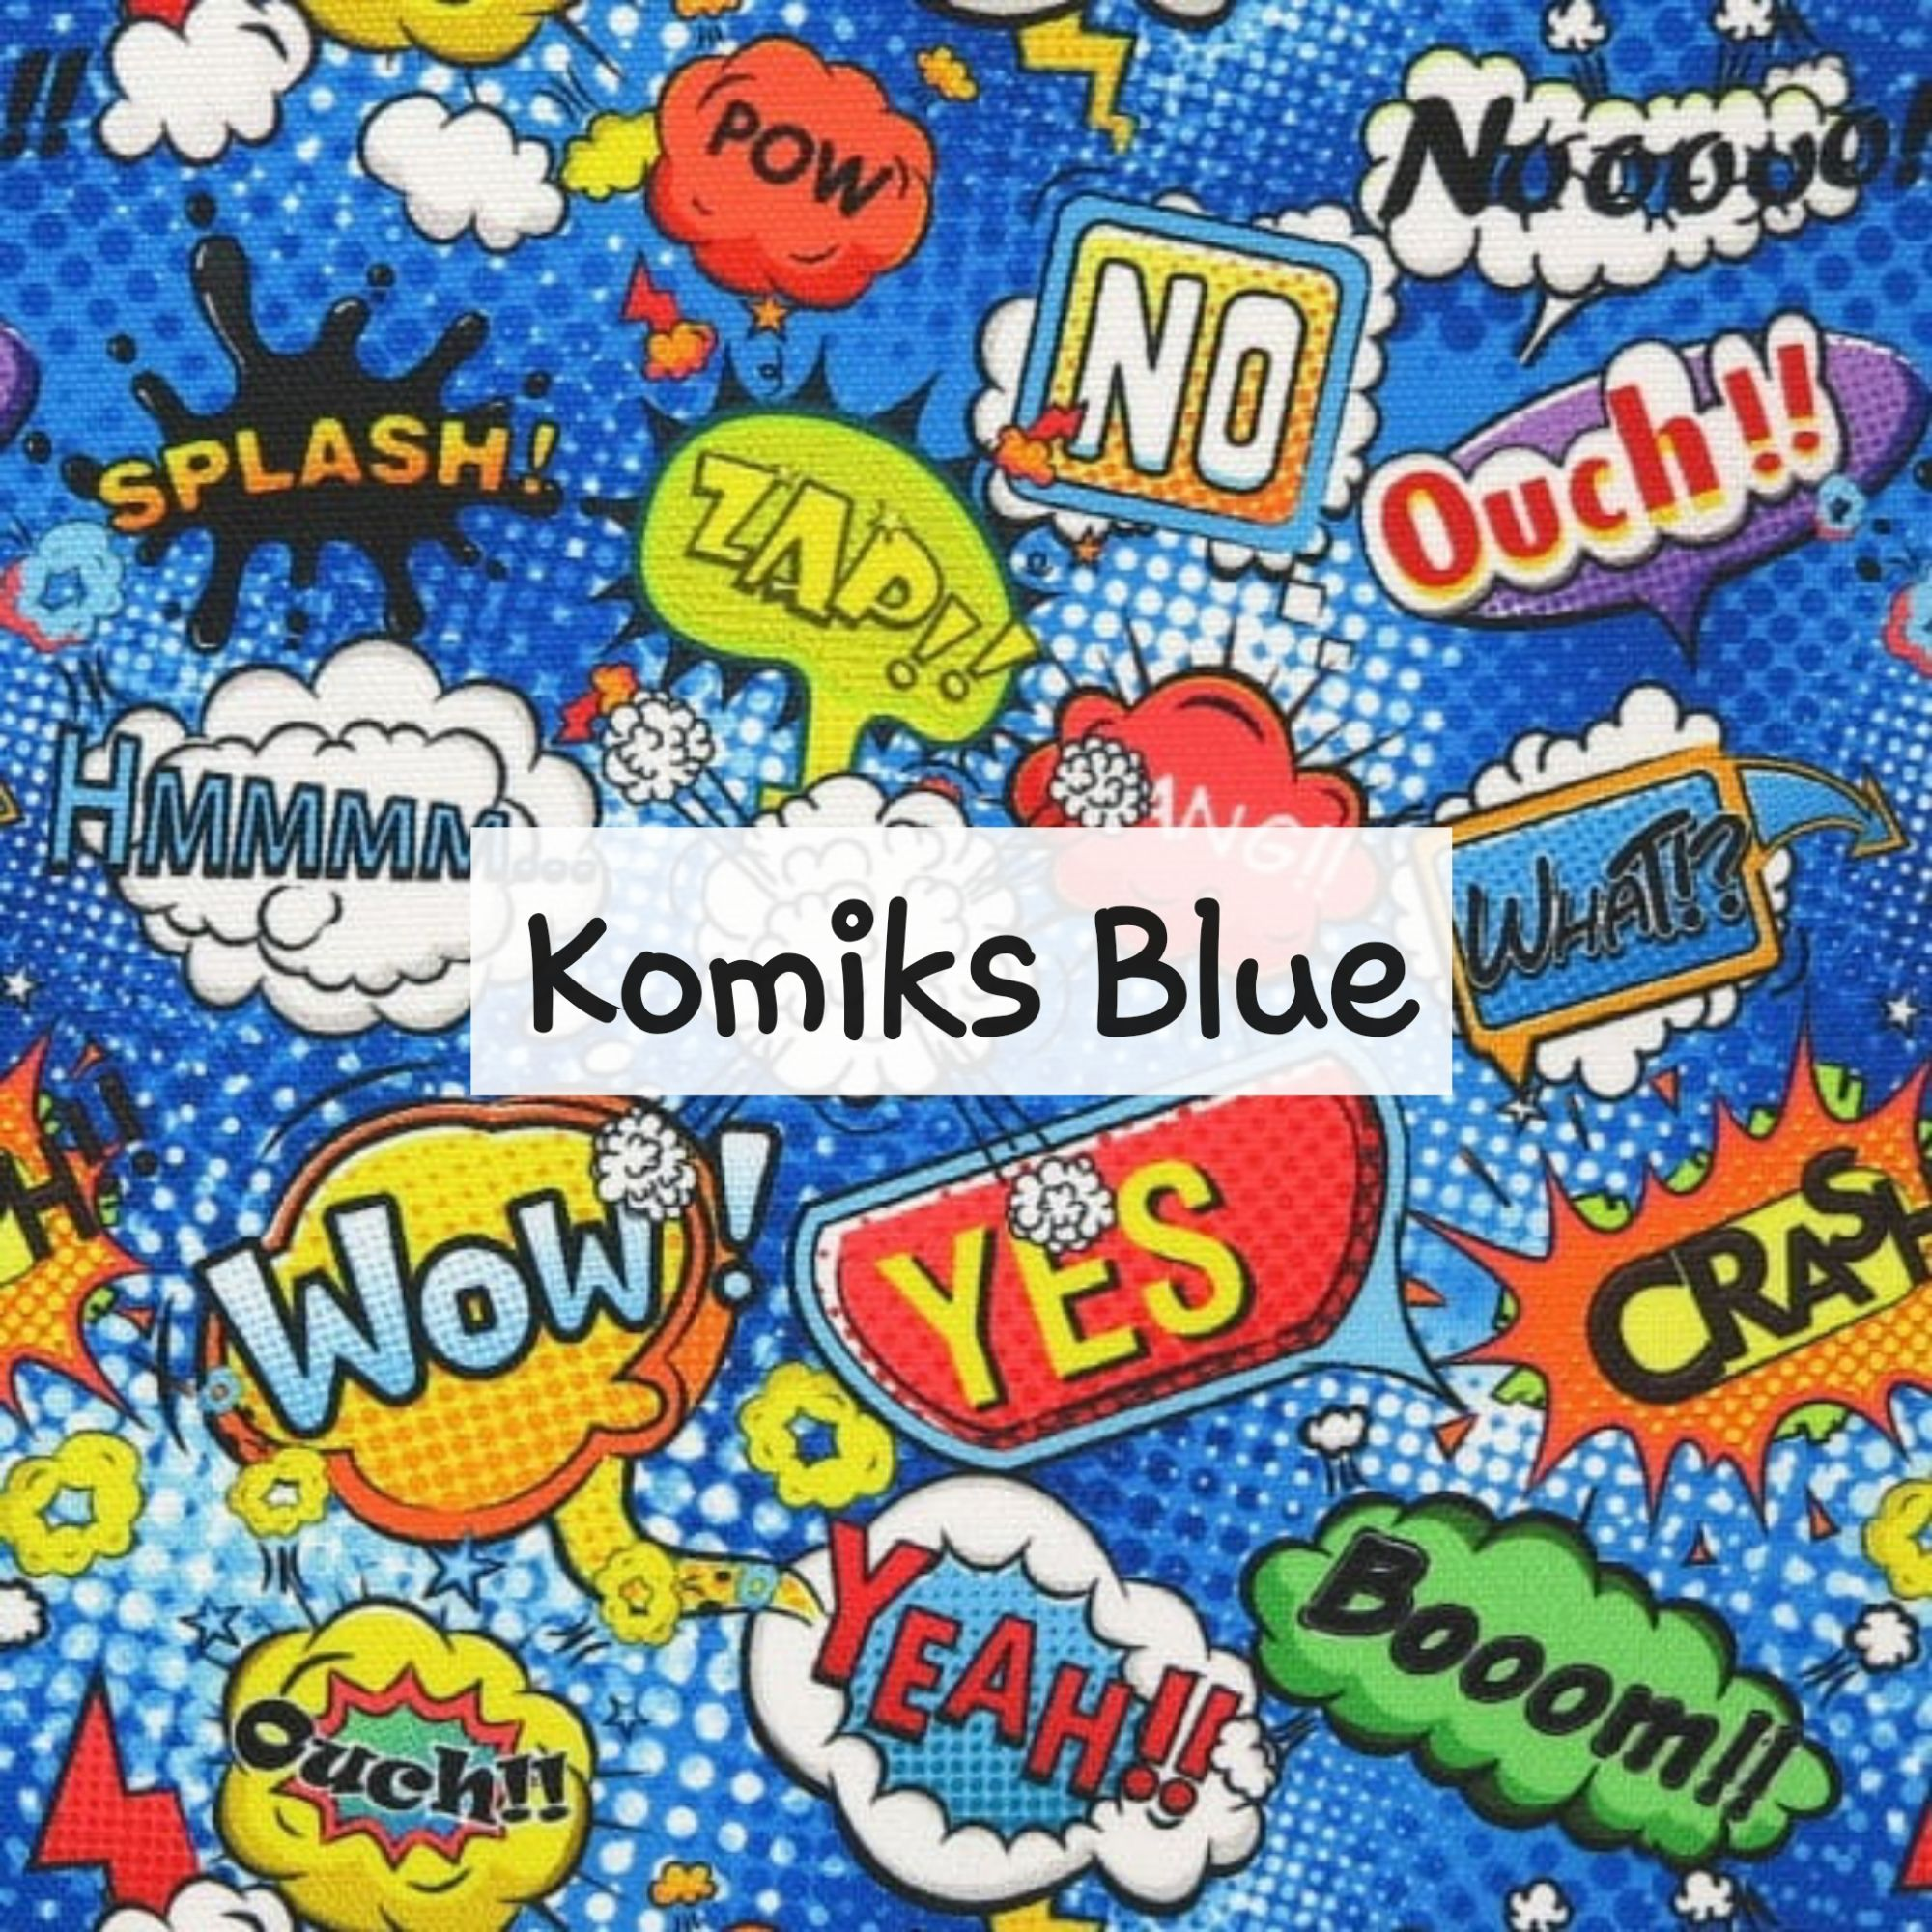 Komiks Blue Waterproof Fabric